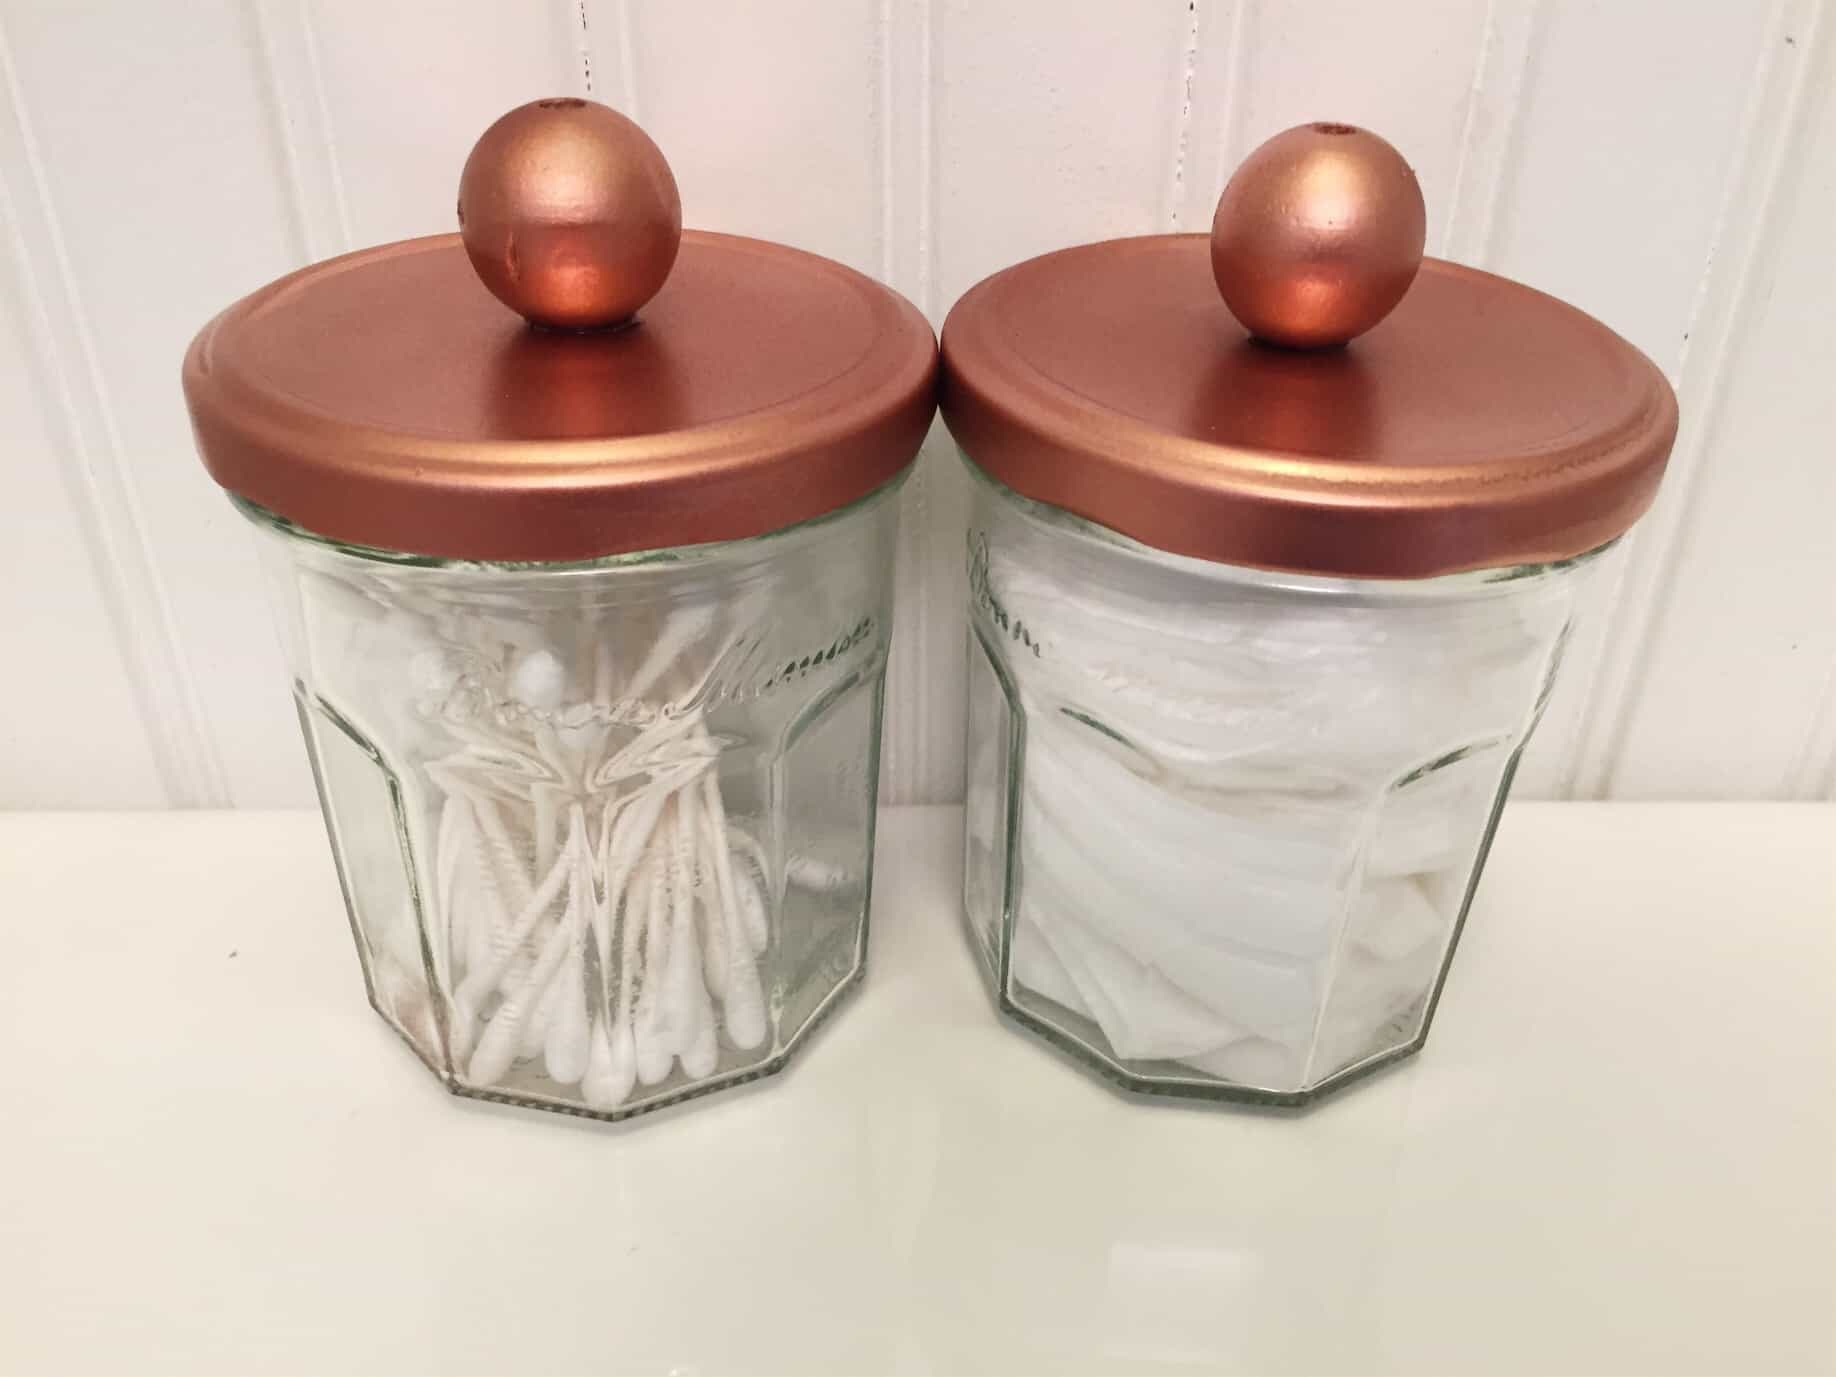 Recycled Glass Storage Jars Up Cycled And Made Beautiful